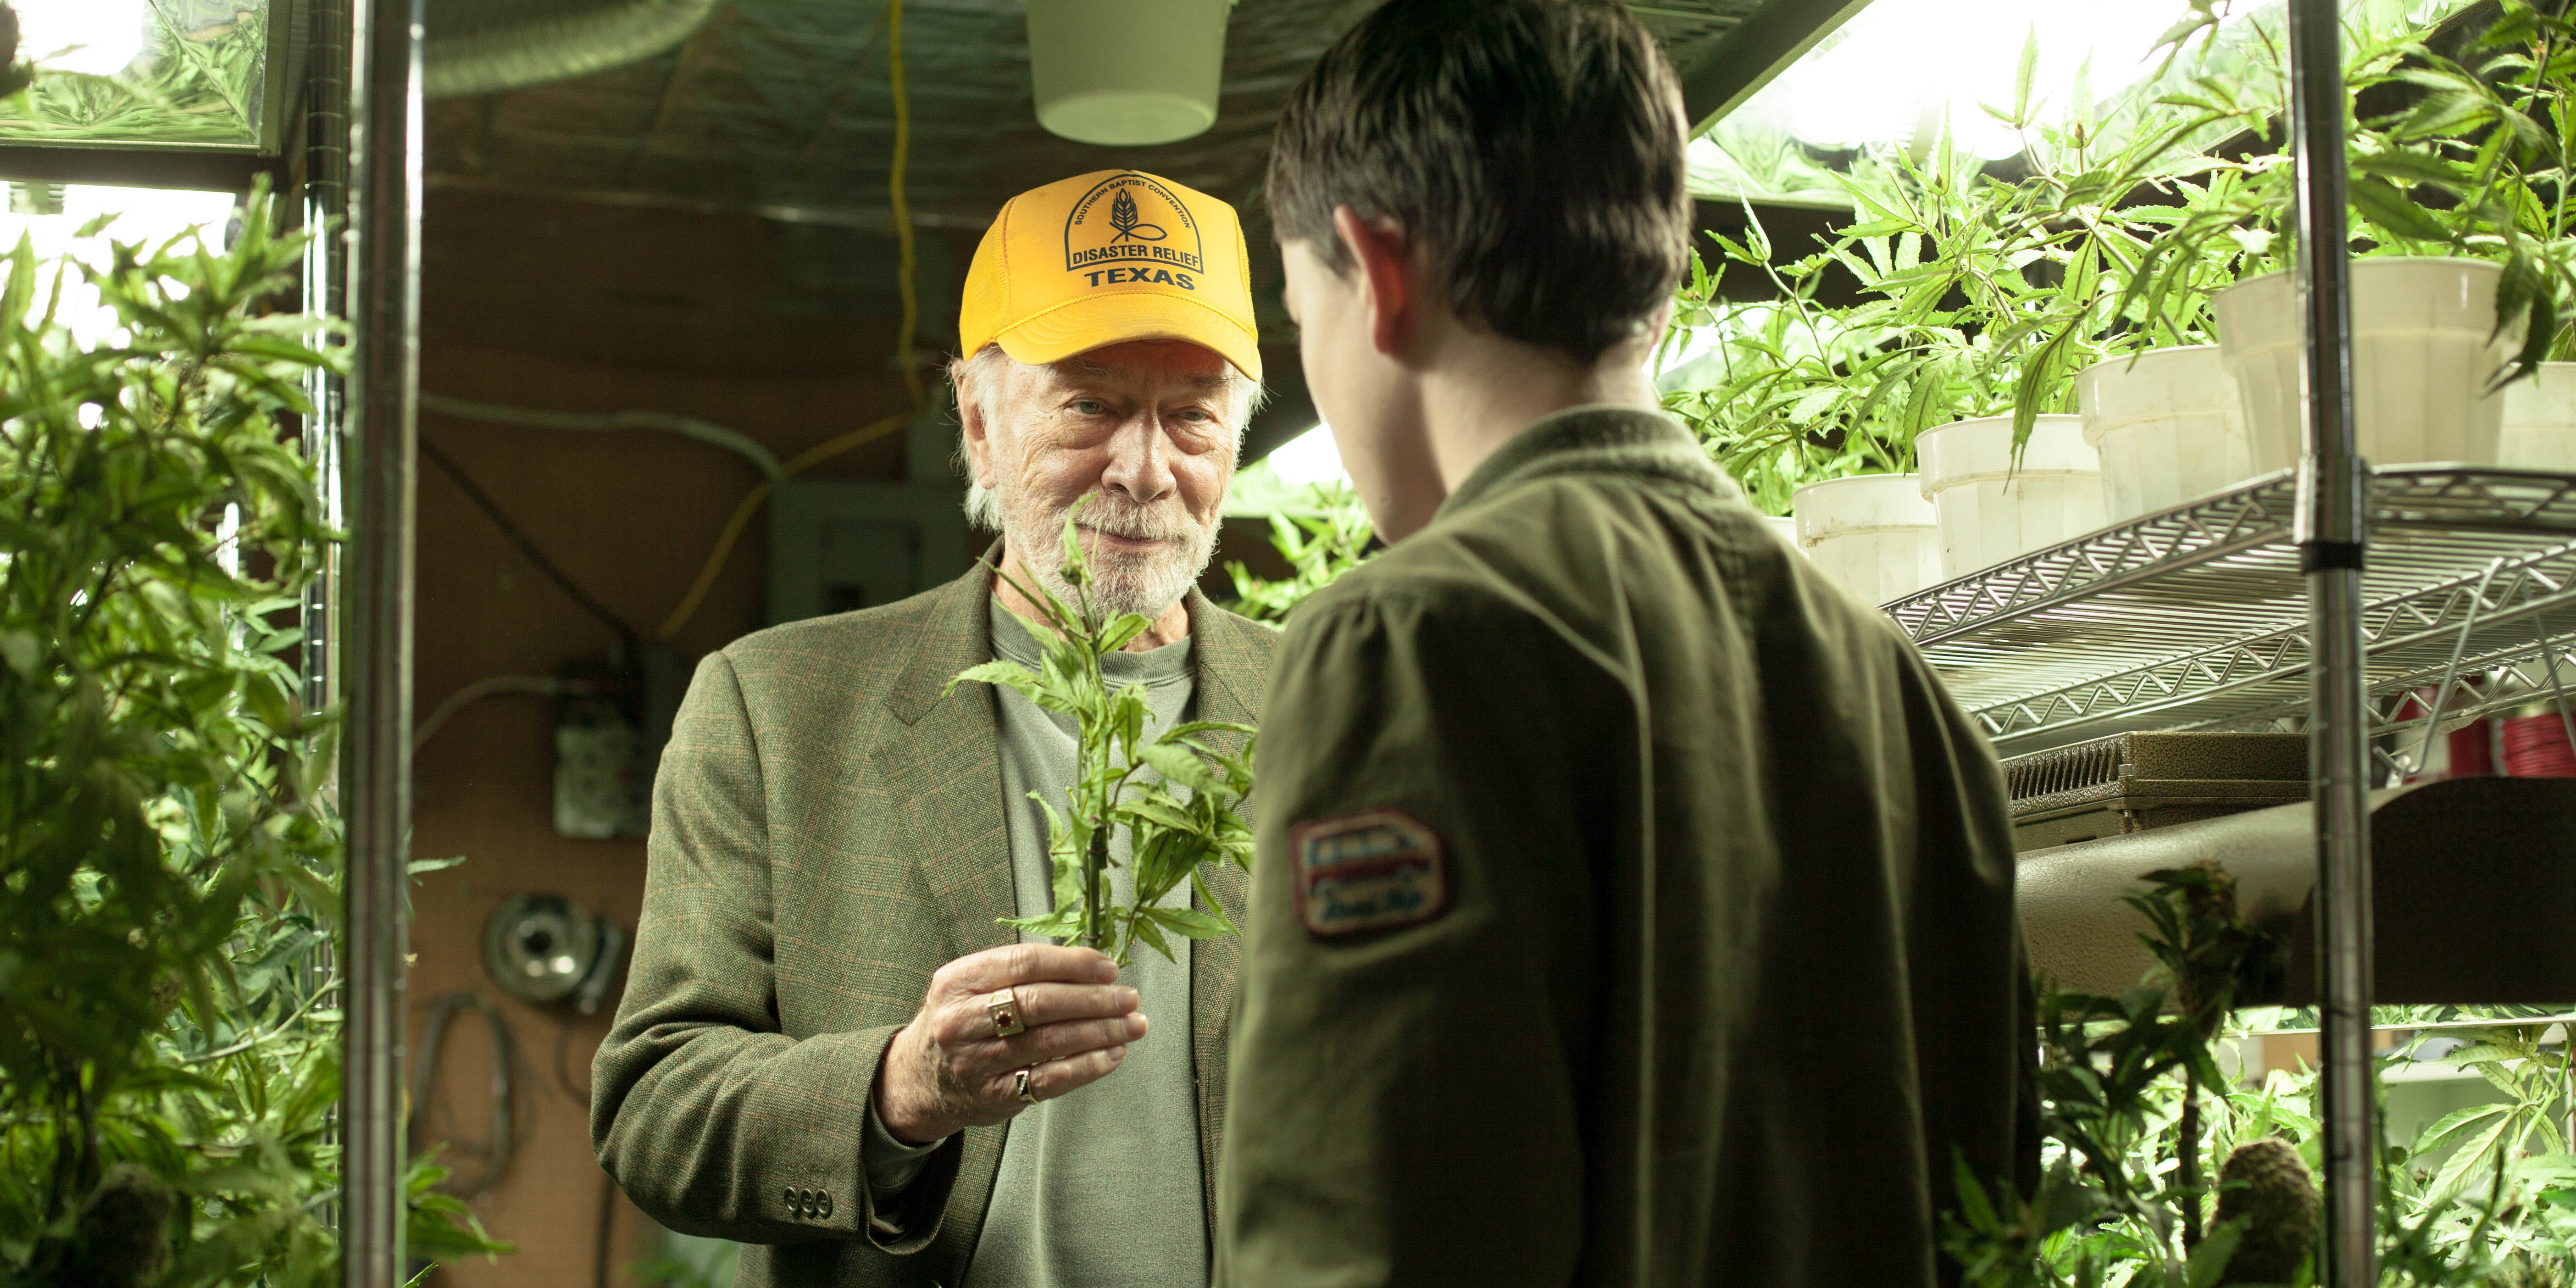 It Turns Out Hollywood's Latest Weed Comedy is Based on a True Story